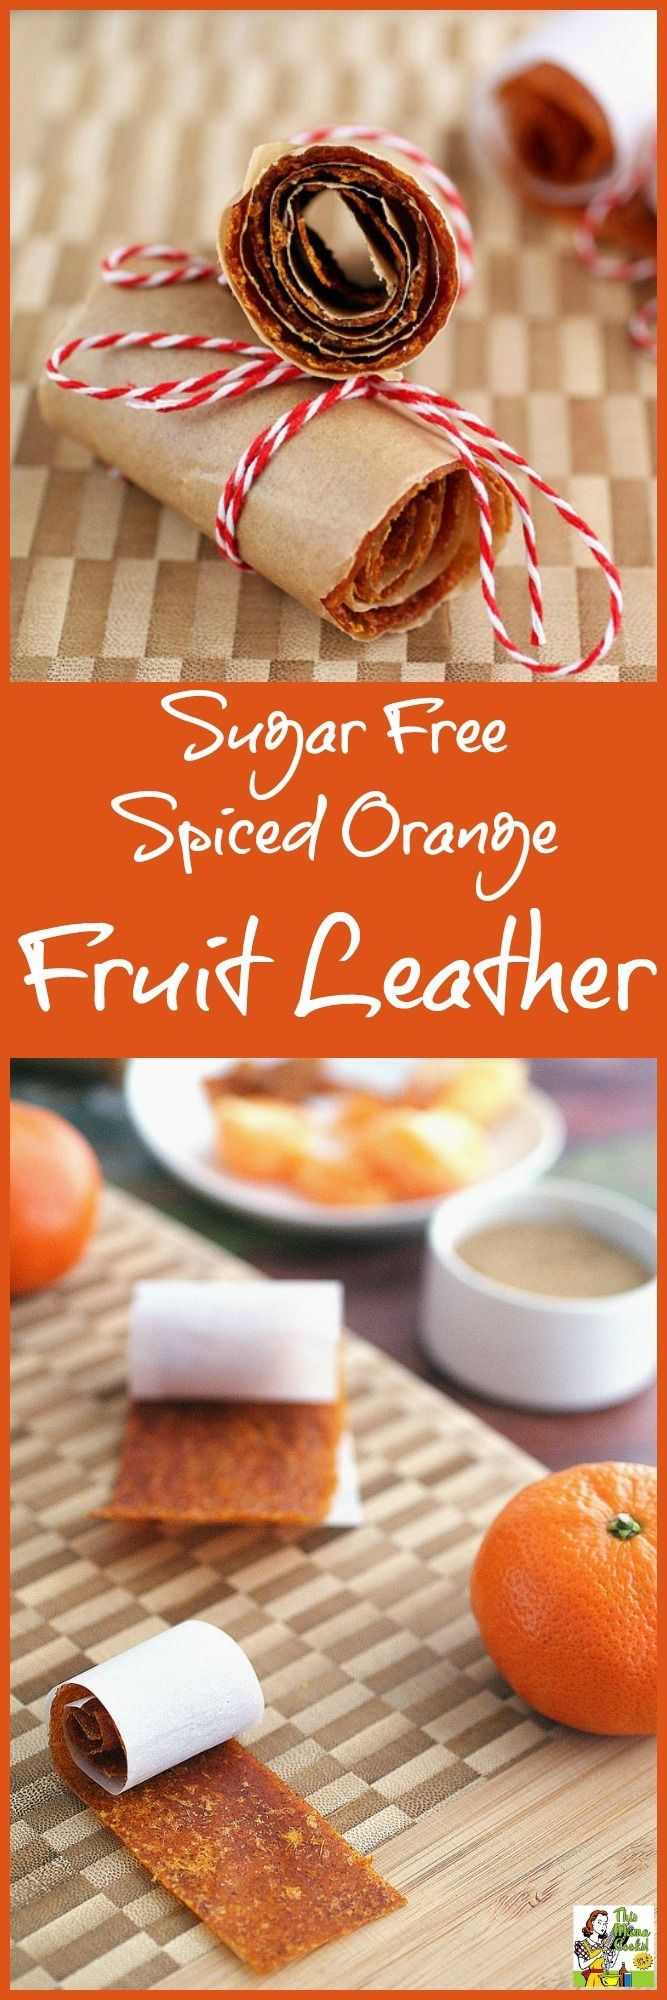 Make this Sugar Free Spiced Orange Fruit Leather recipe as an alternative to store bought foot roll up candy.